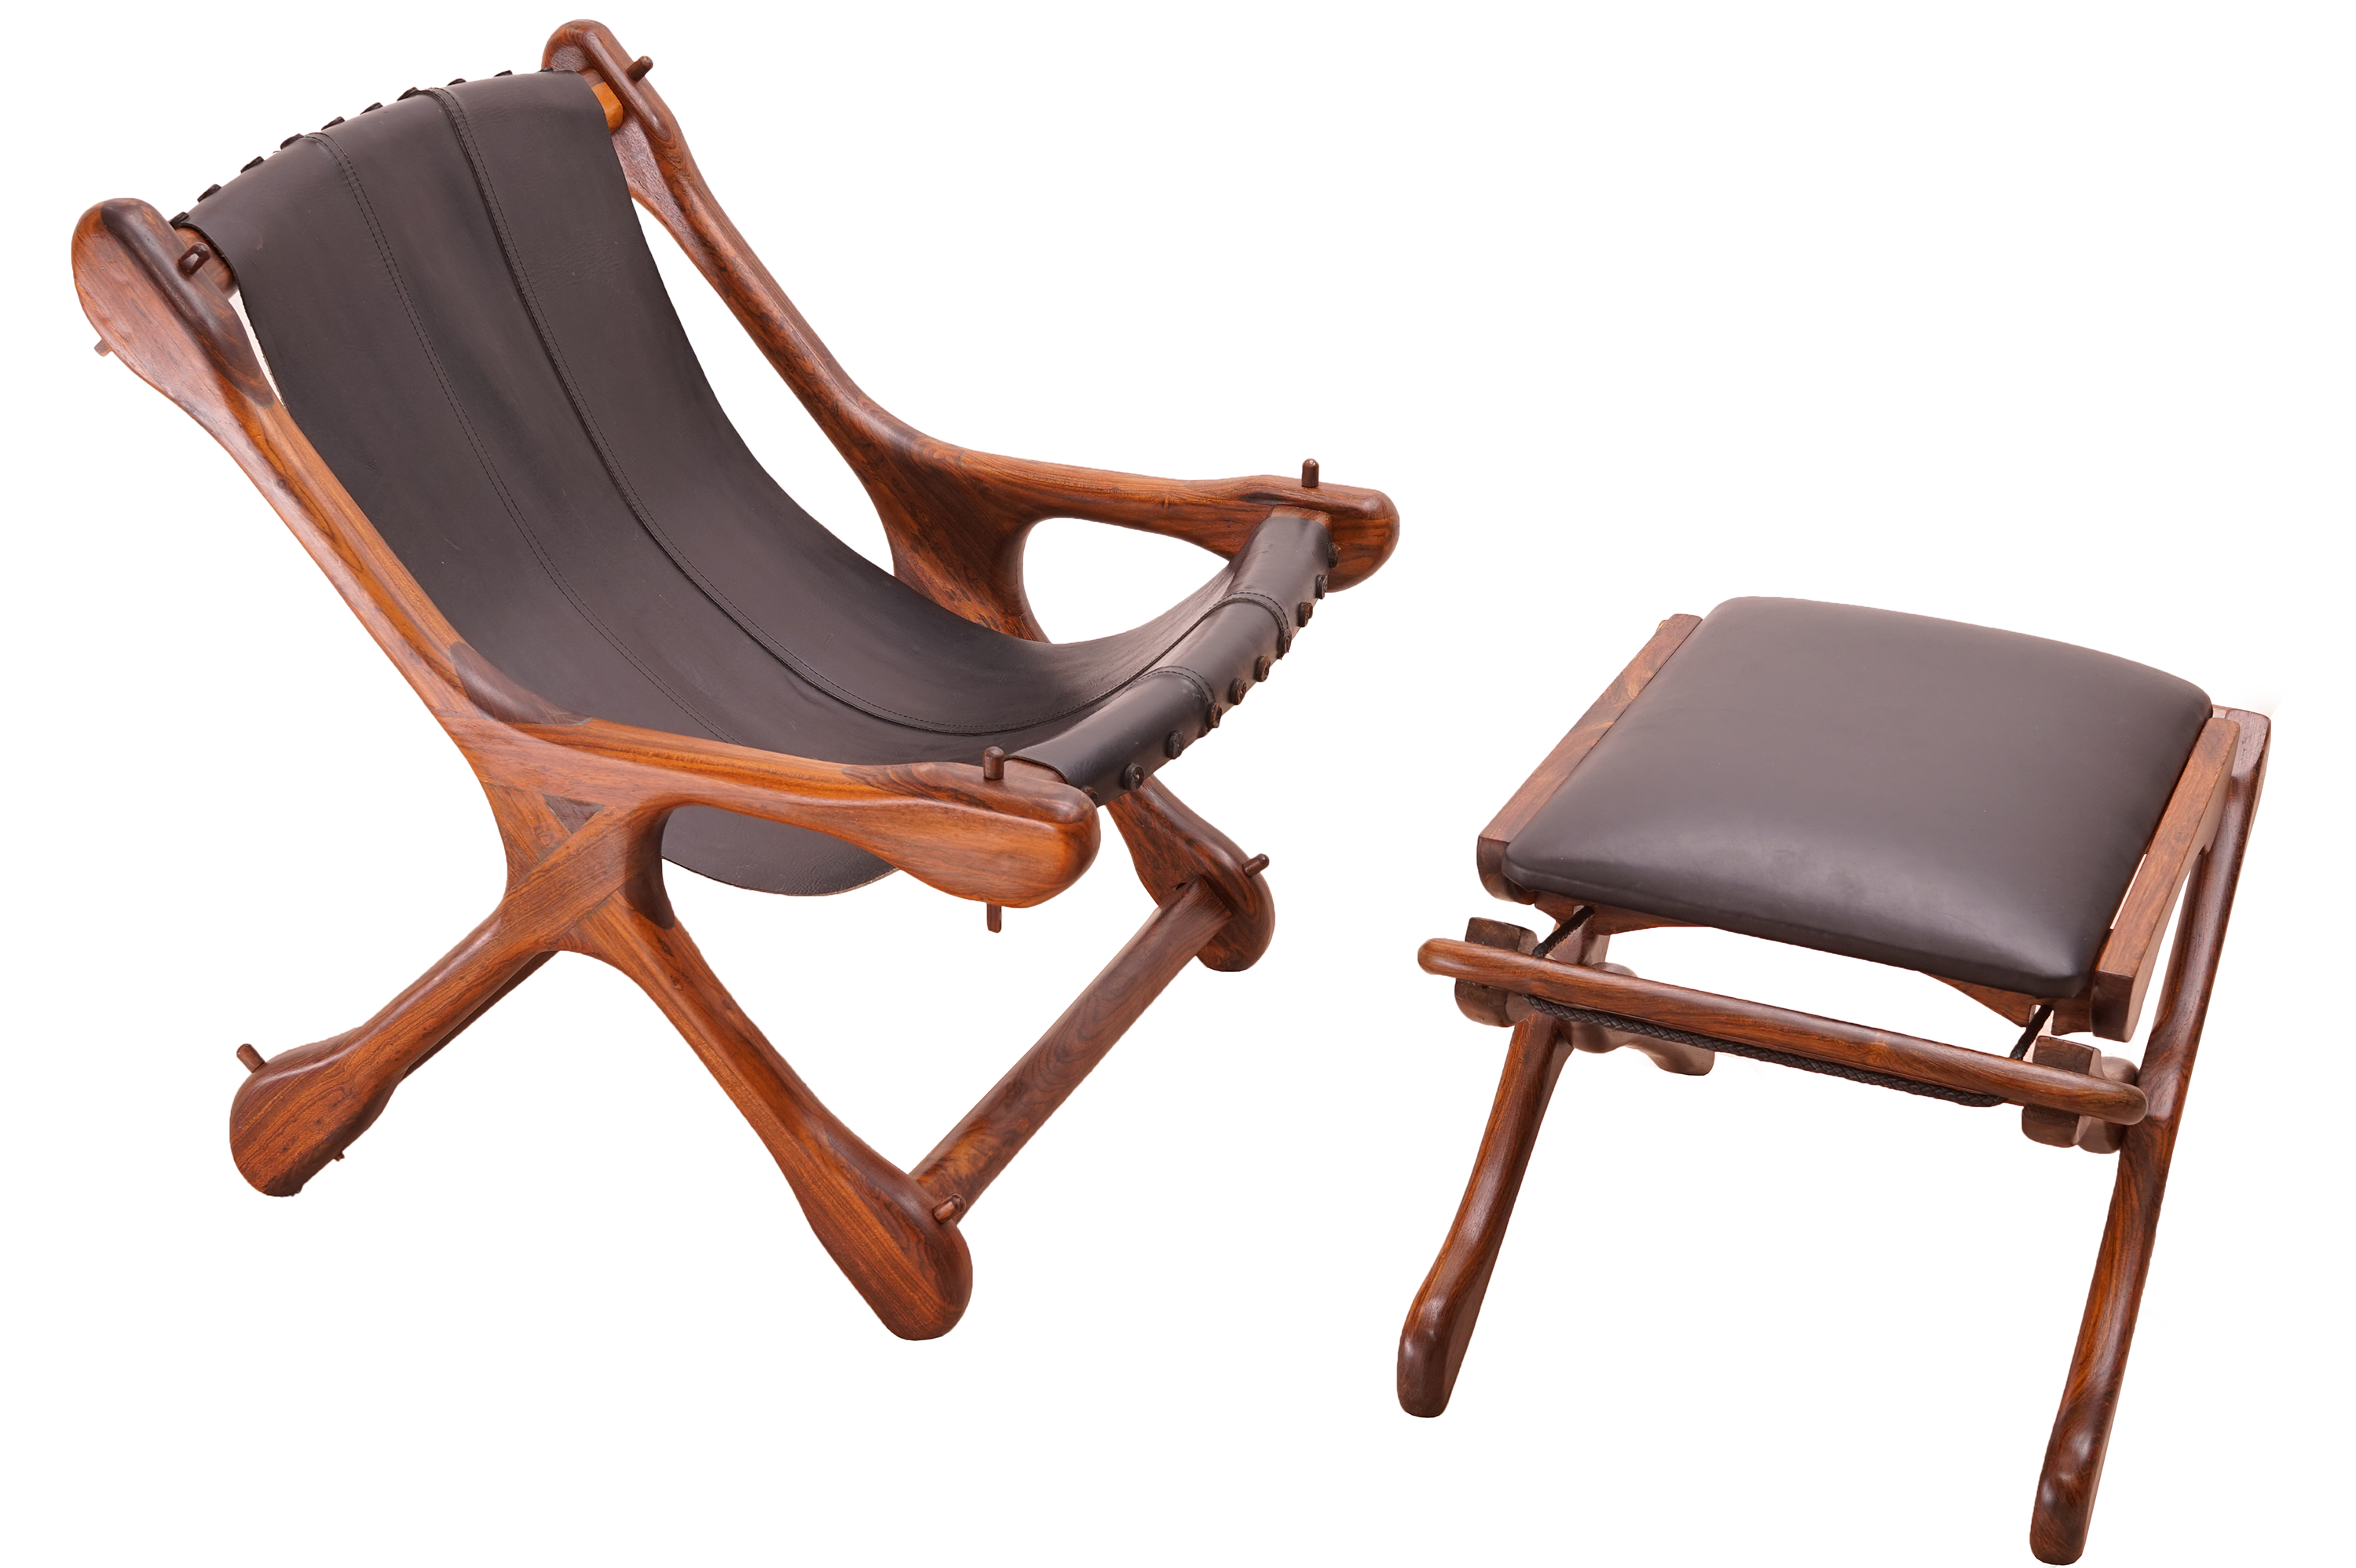 Sling Chair with Ottoman by Don Shoemaker